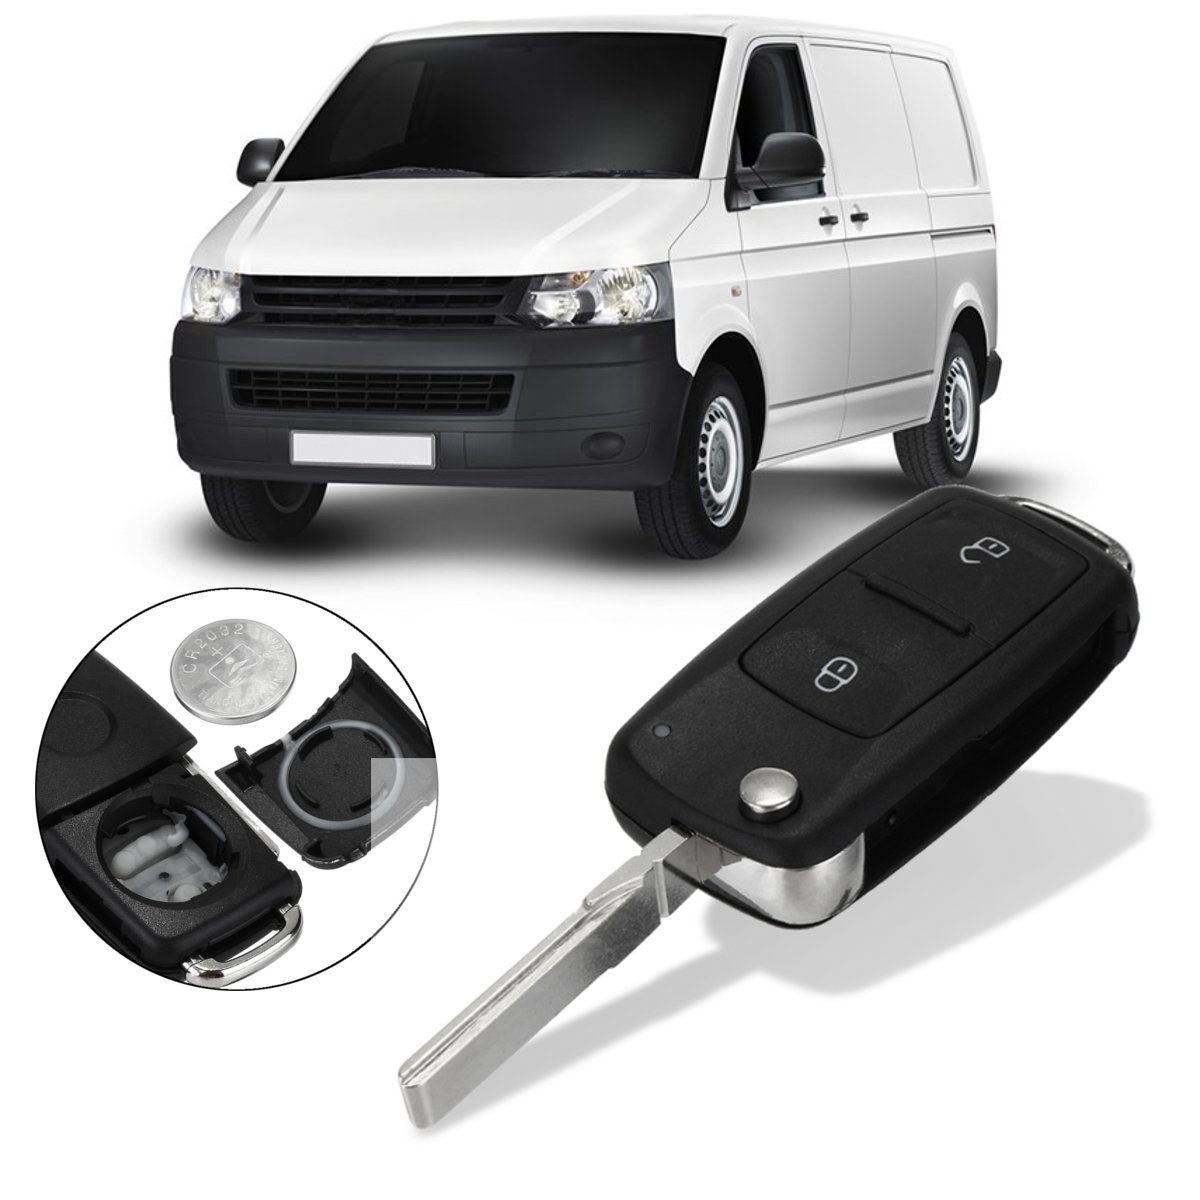 2 Buttons Lock Unlock Entry Car Remote Key FOB Case w/ Battery Replacement For VW Transporter T5 Polo GOLF Polo